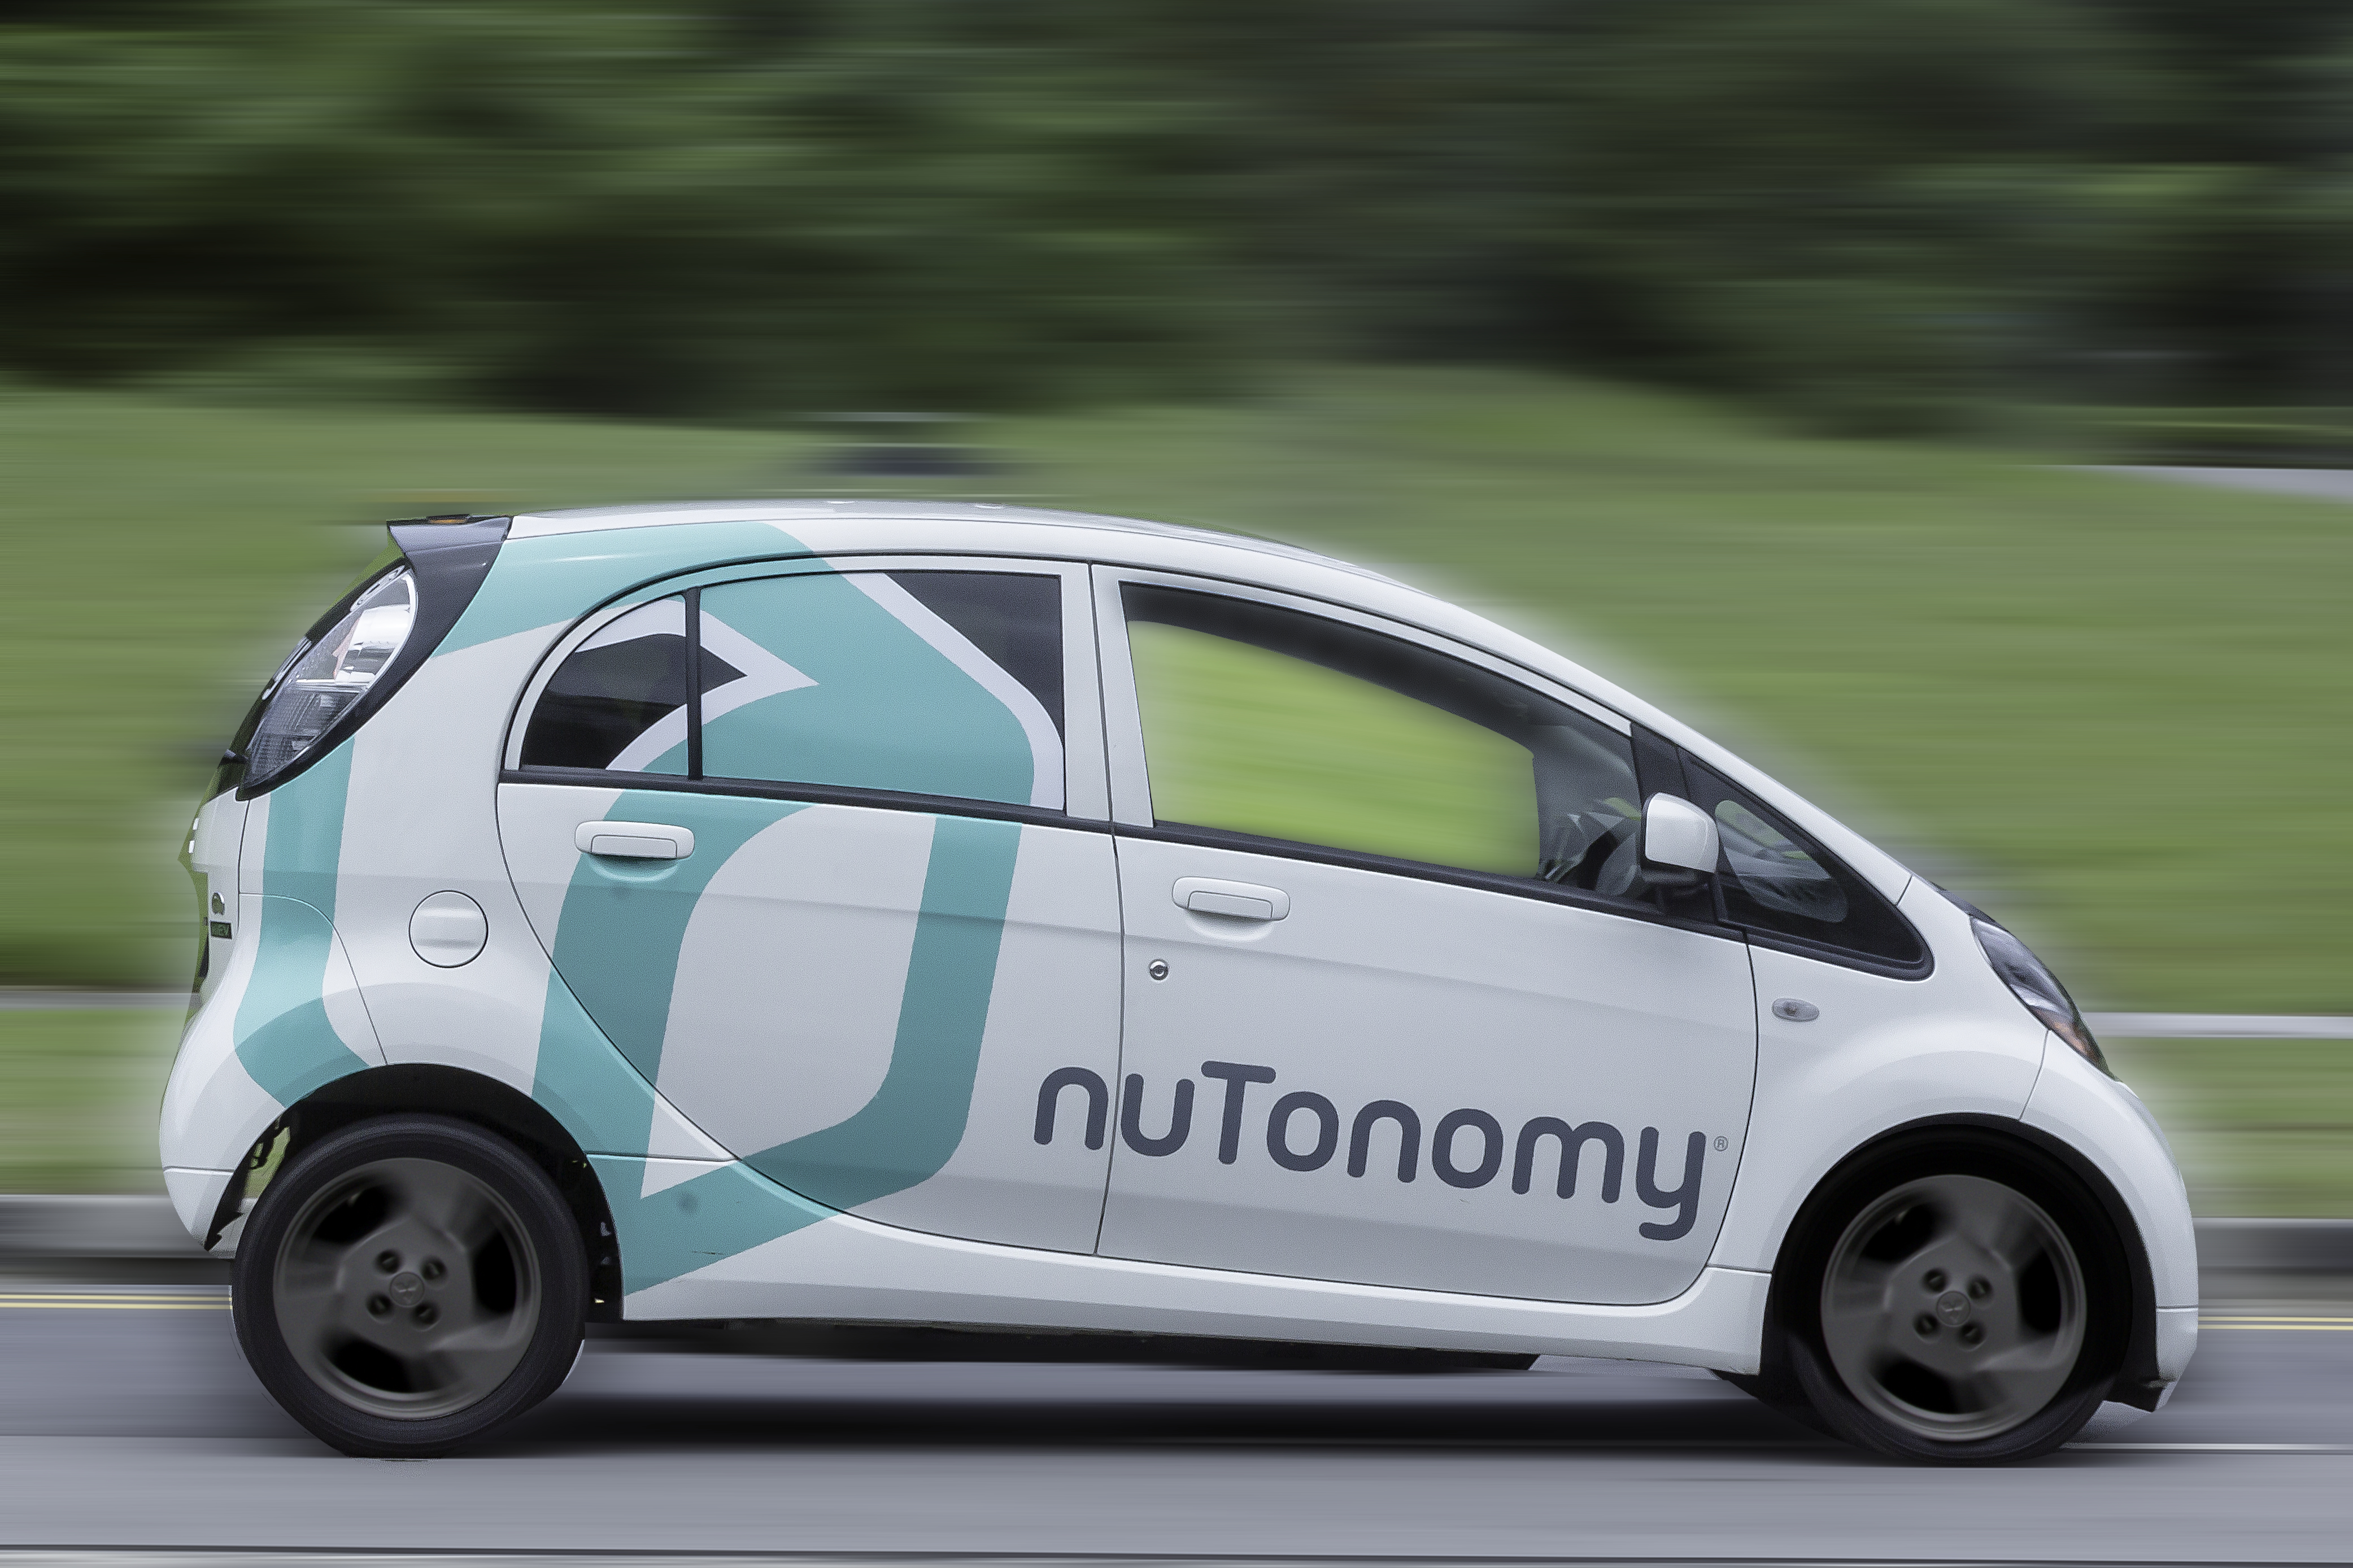 NuTonomy wants to put driverless taxis in Singapore by 2018.